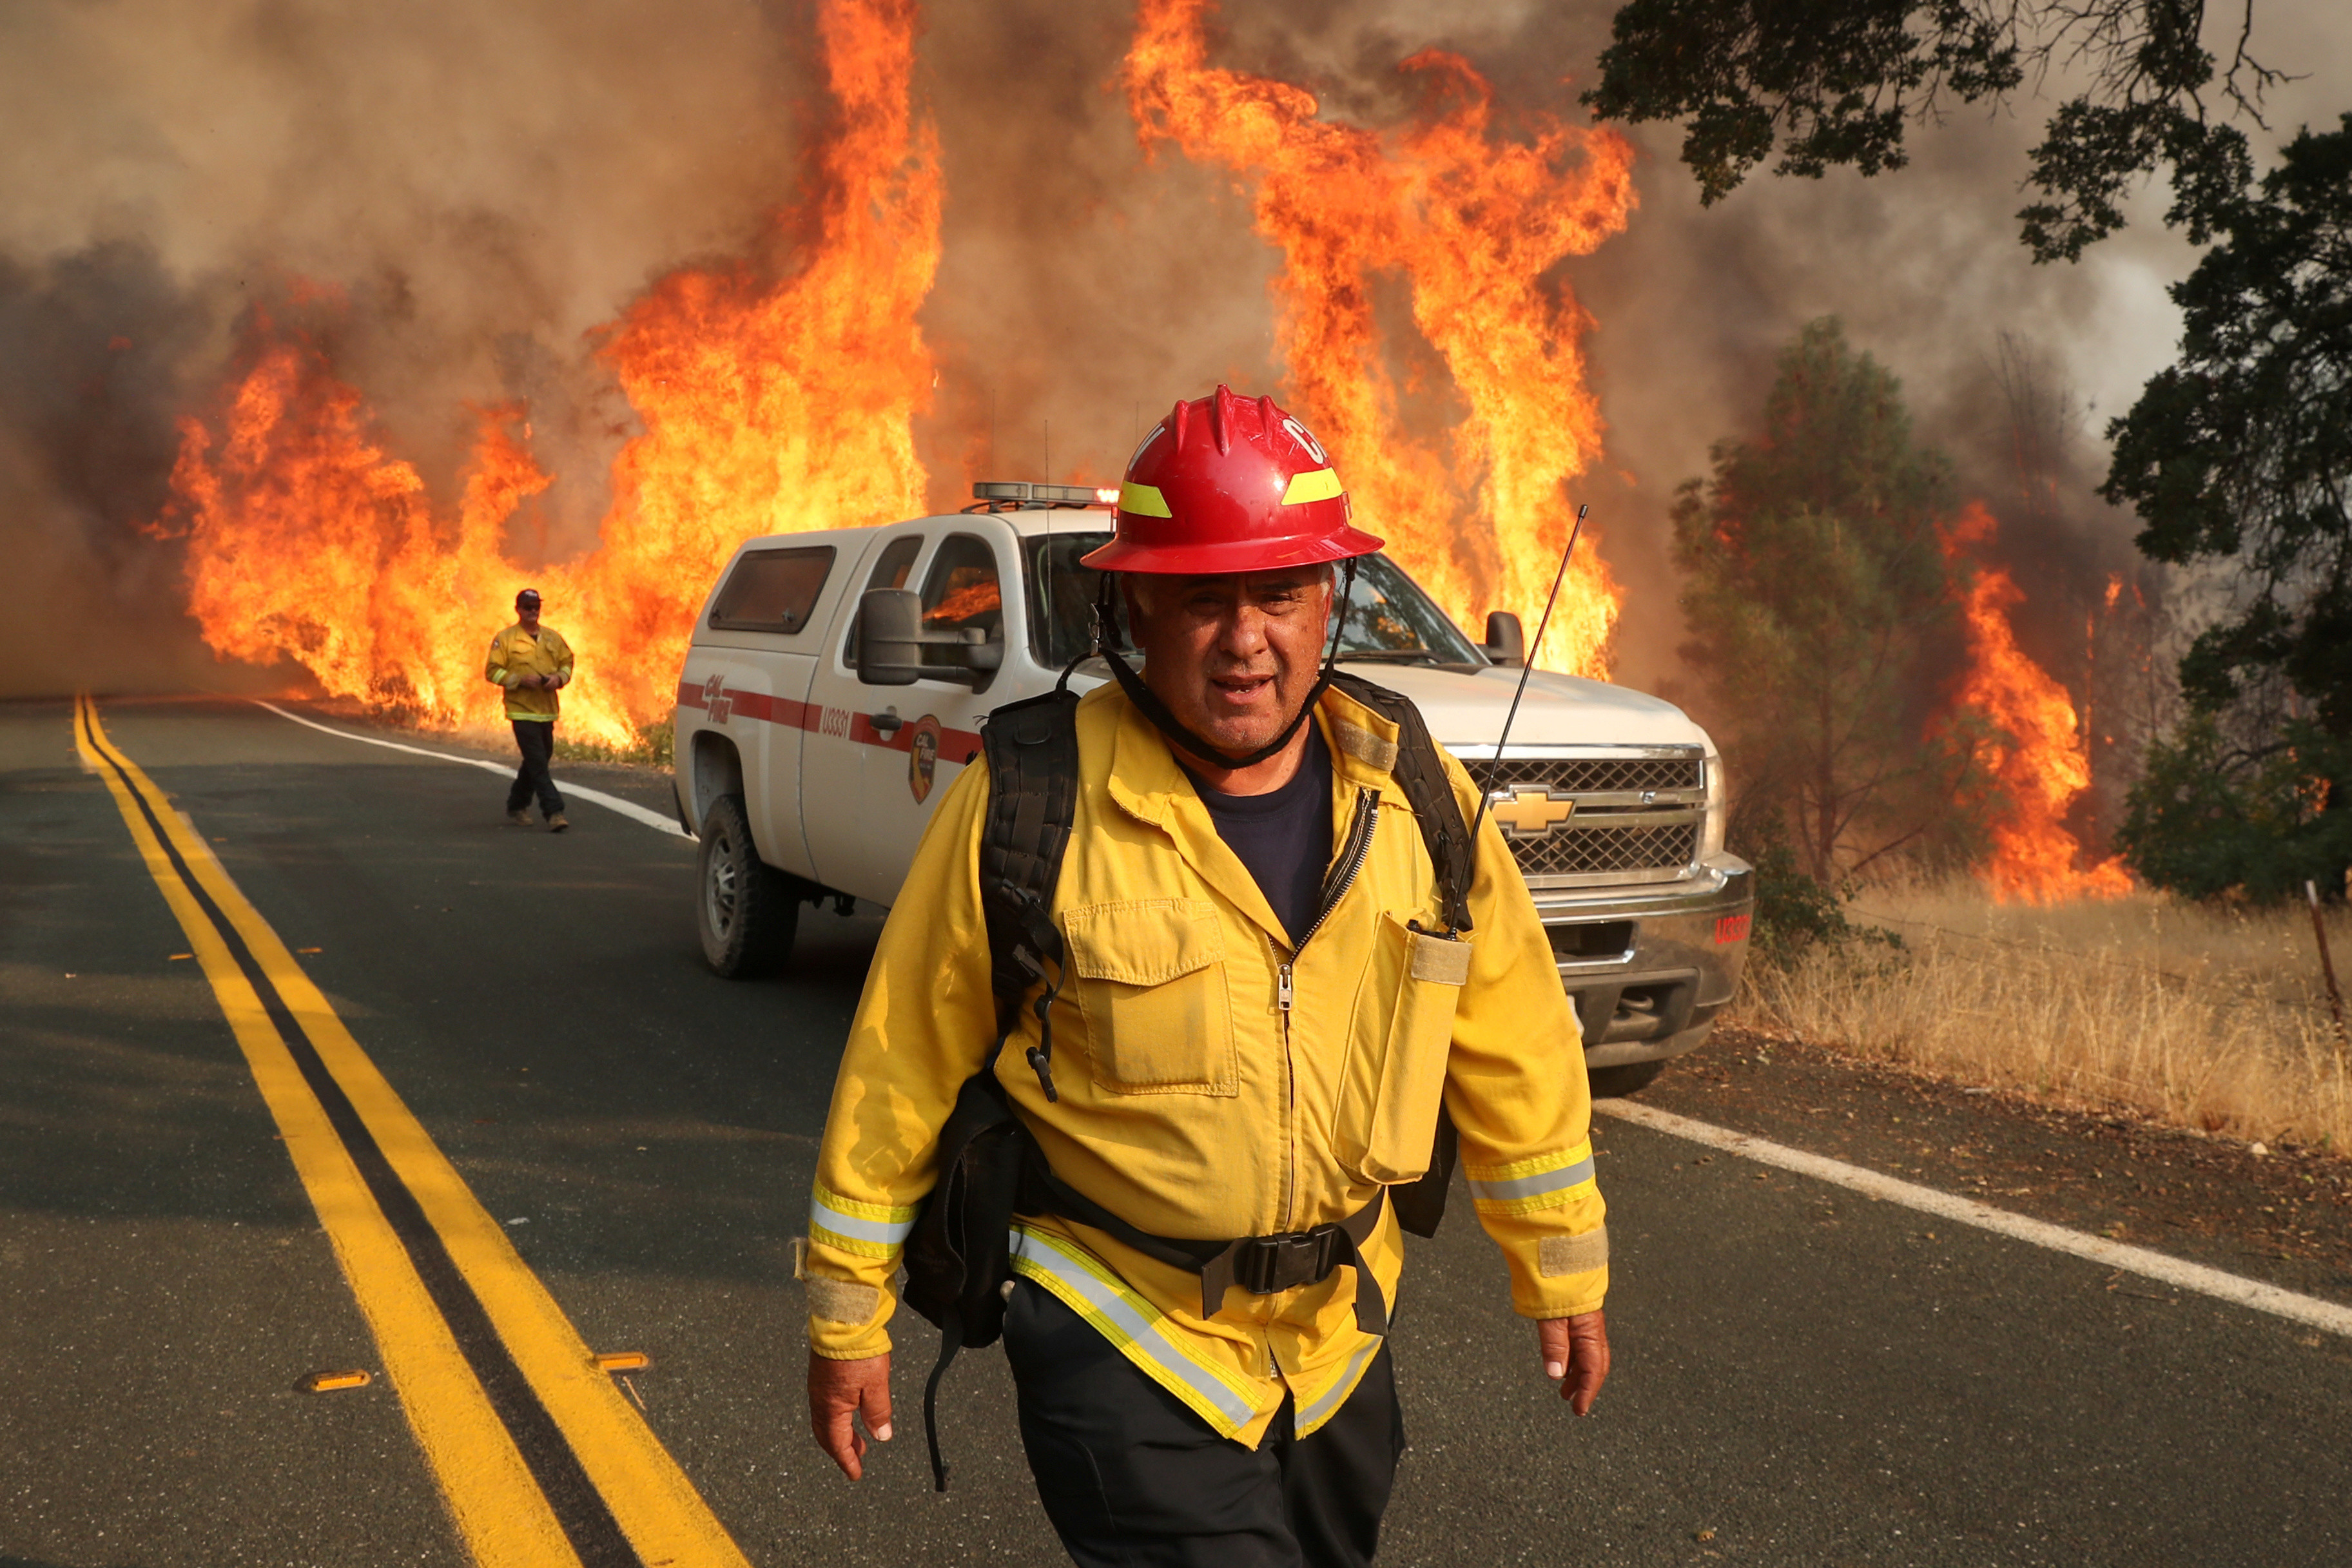 Chula Vista firefighter Rudy Diaz monitors the LNU Lightning Complex Fire as it engulfs brush in Lake County, California, U.S. August 23, 2020.